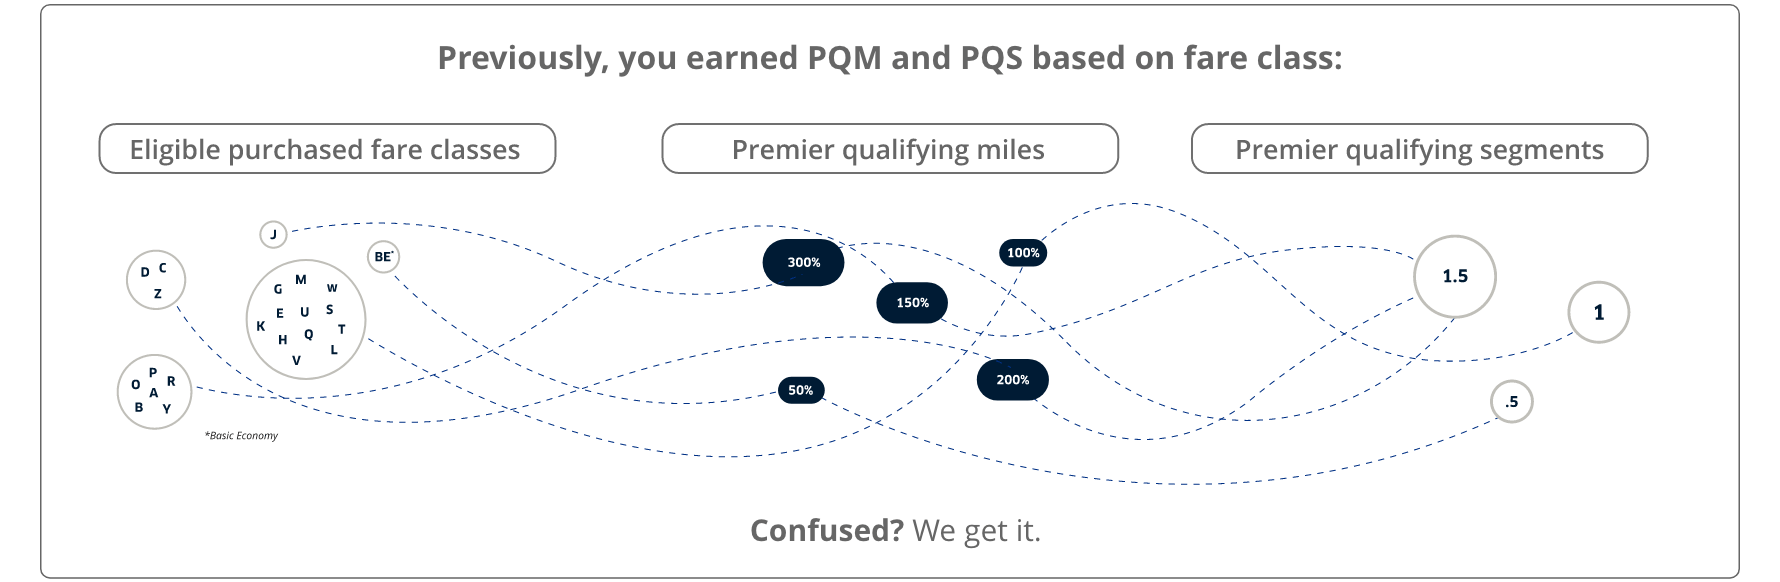 Today, you earn PQM  and PQS based on  fare class. Confused? We get it.